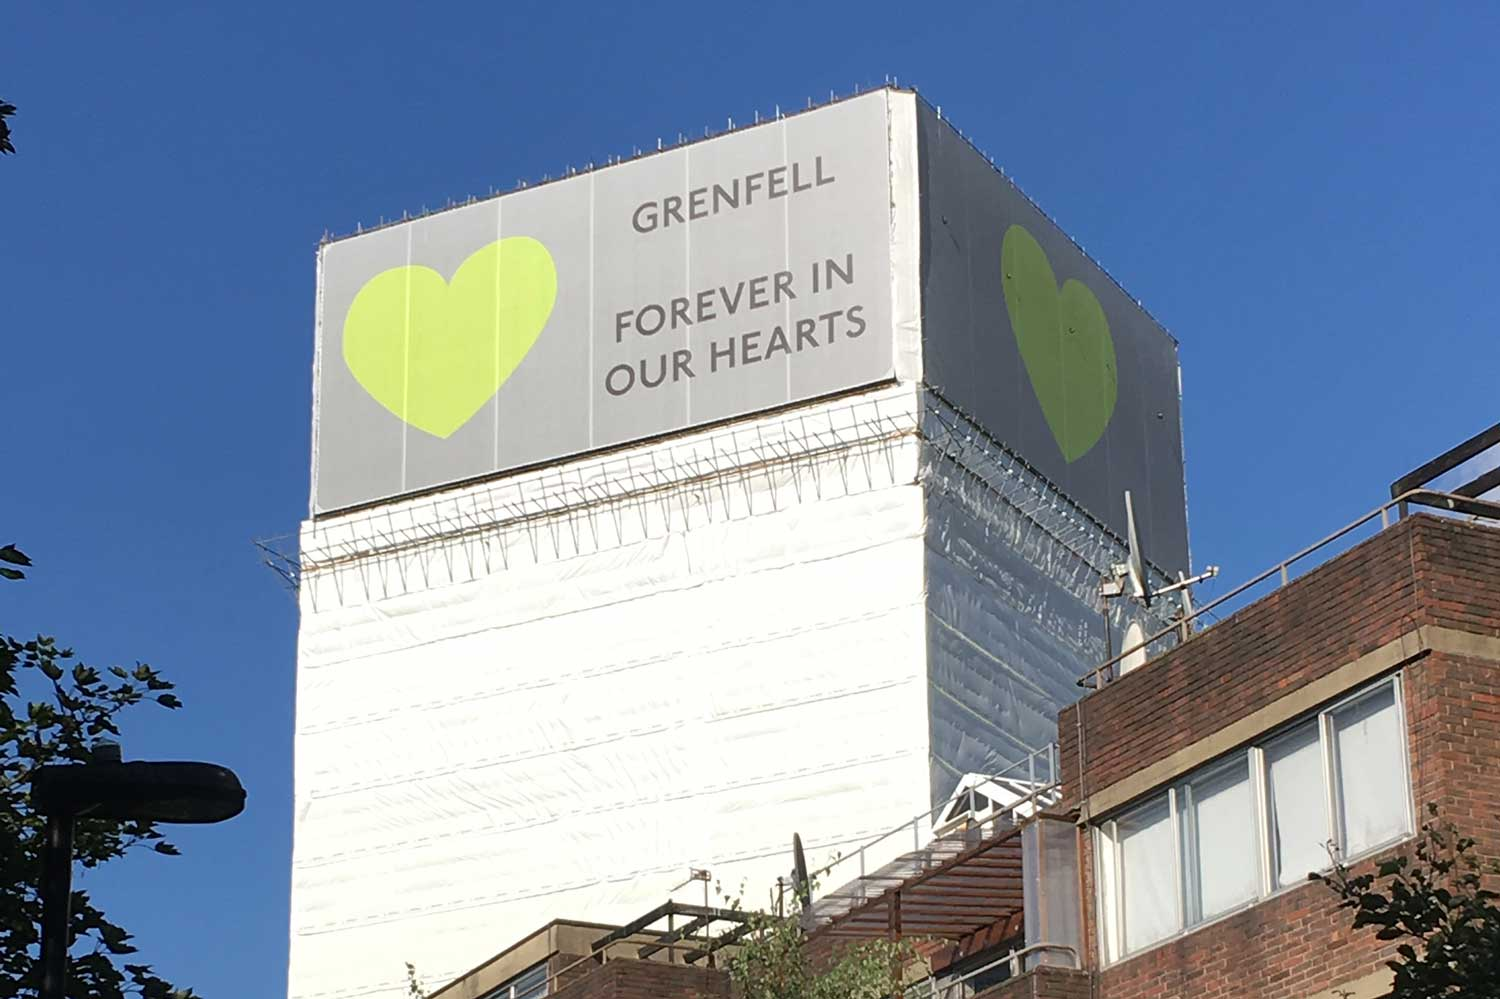 Grenfell Forever In Our Hearts